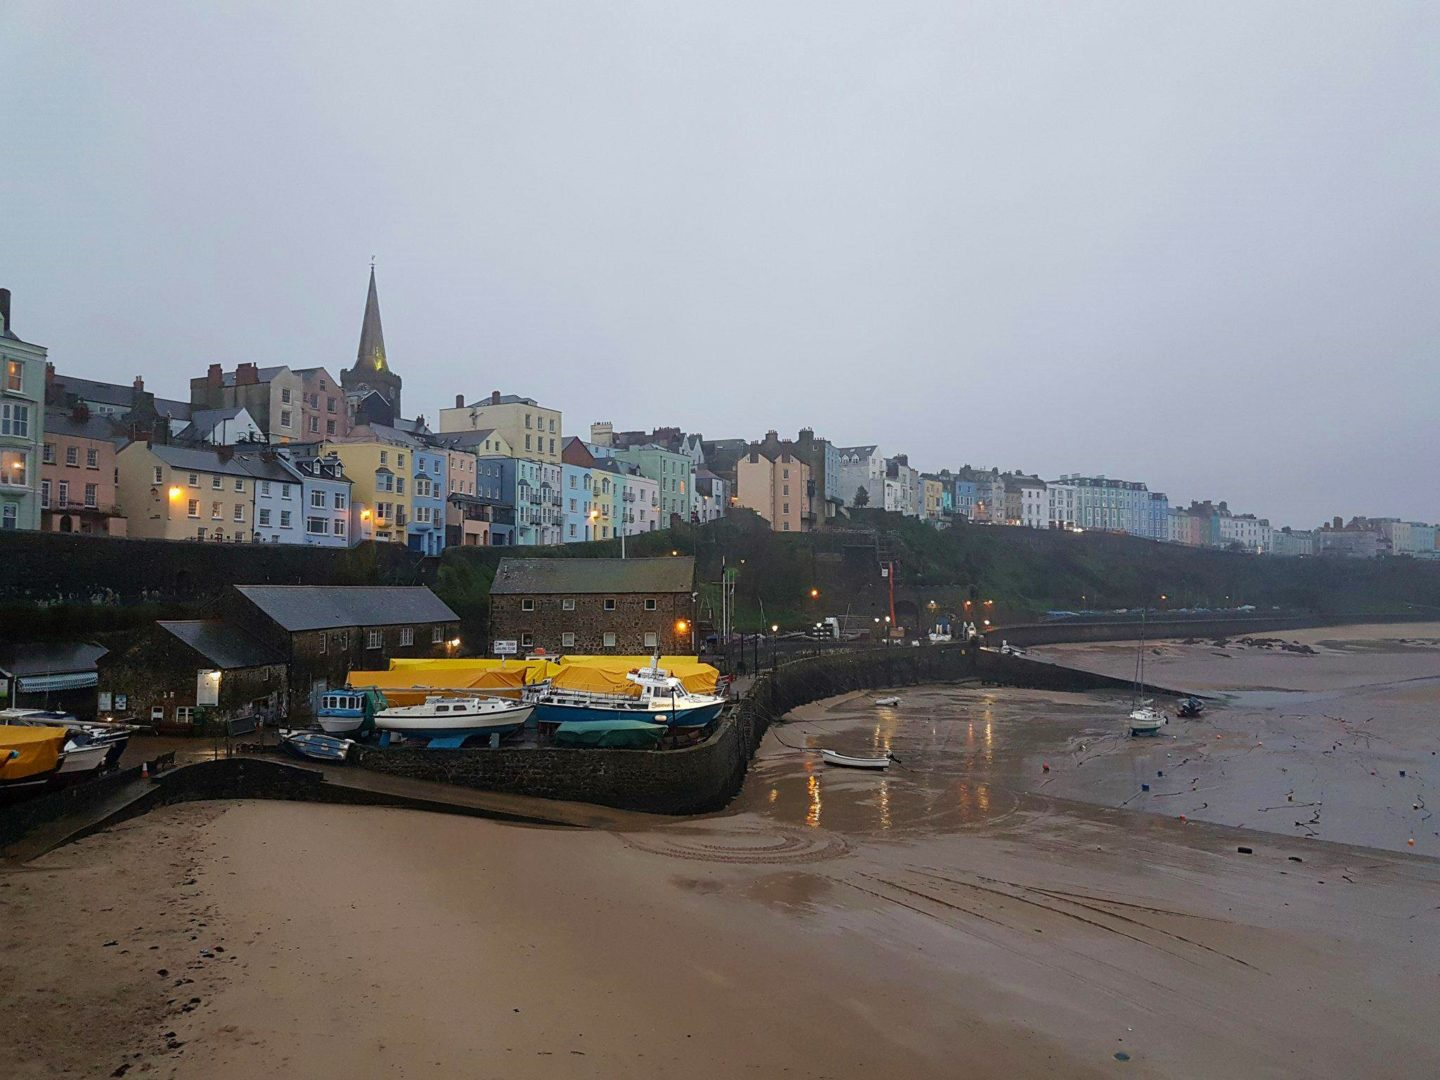 Tenby, Pembrokeshire in November